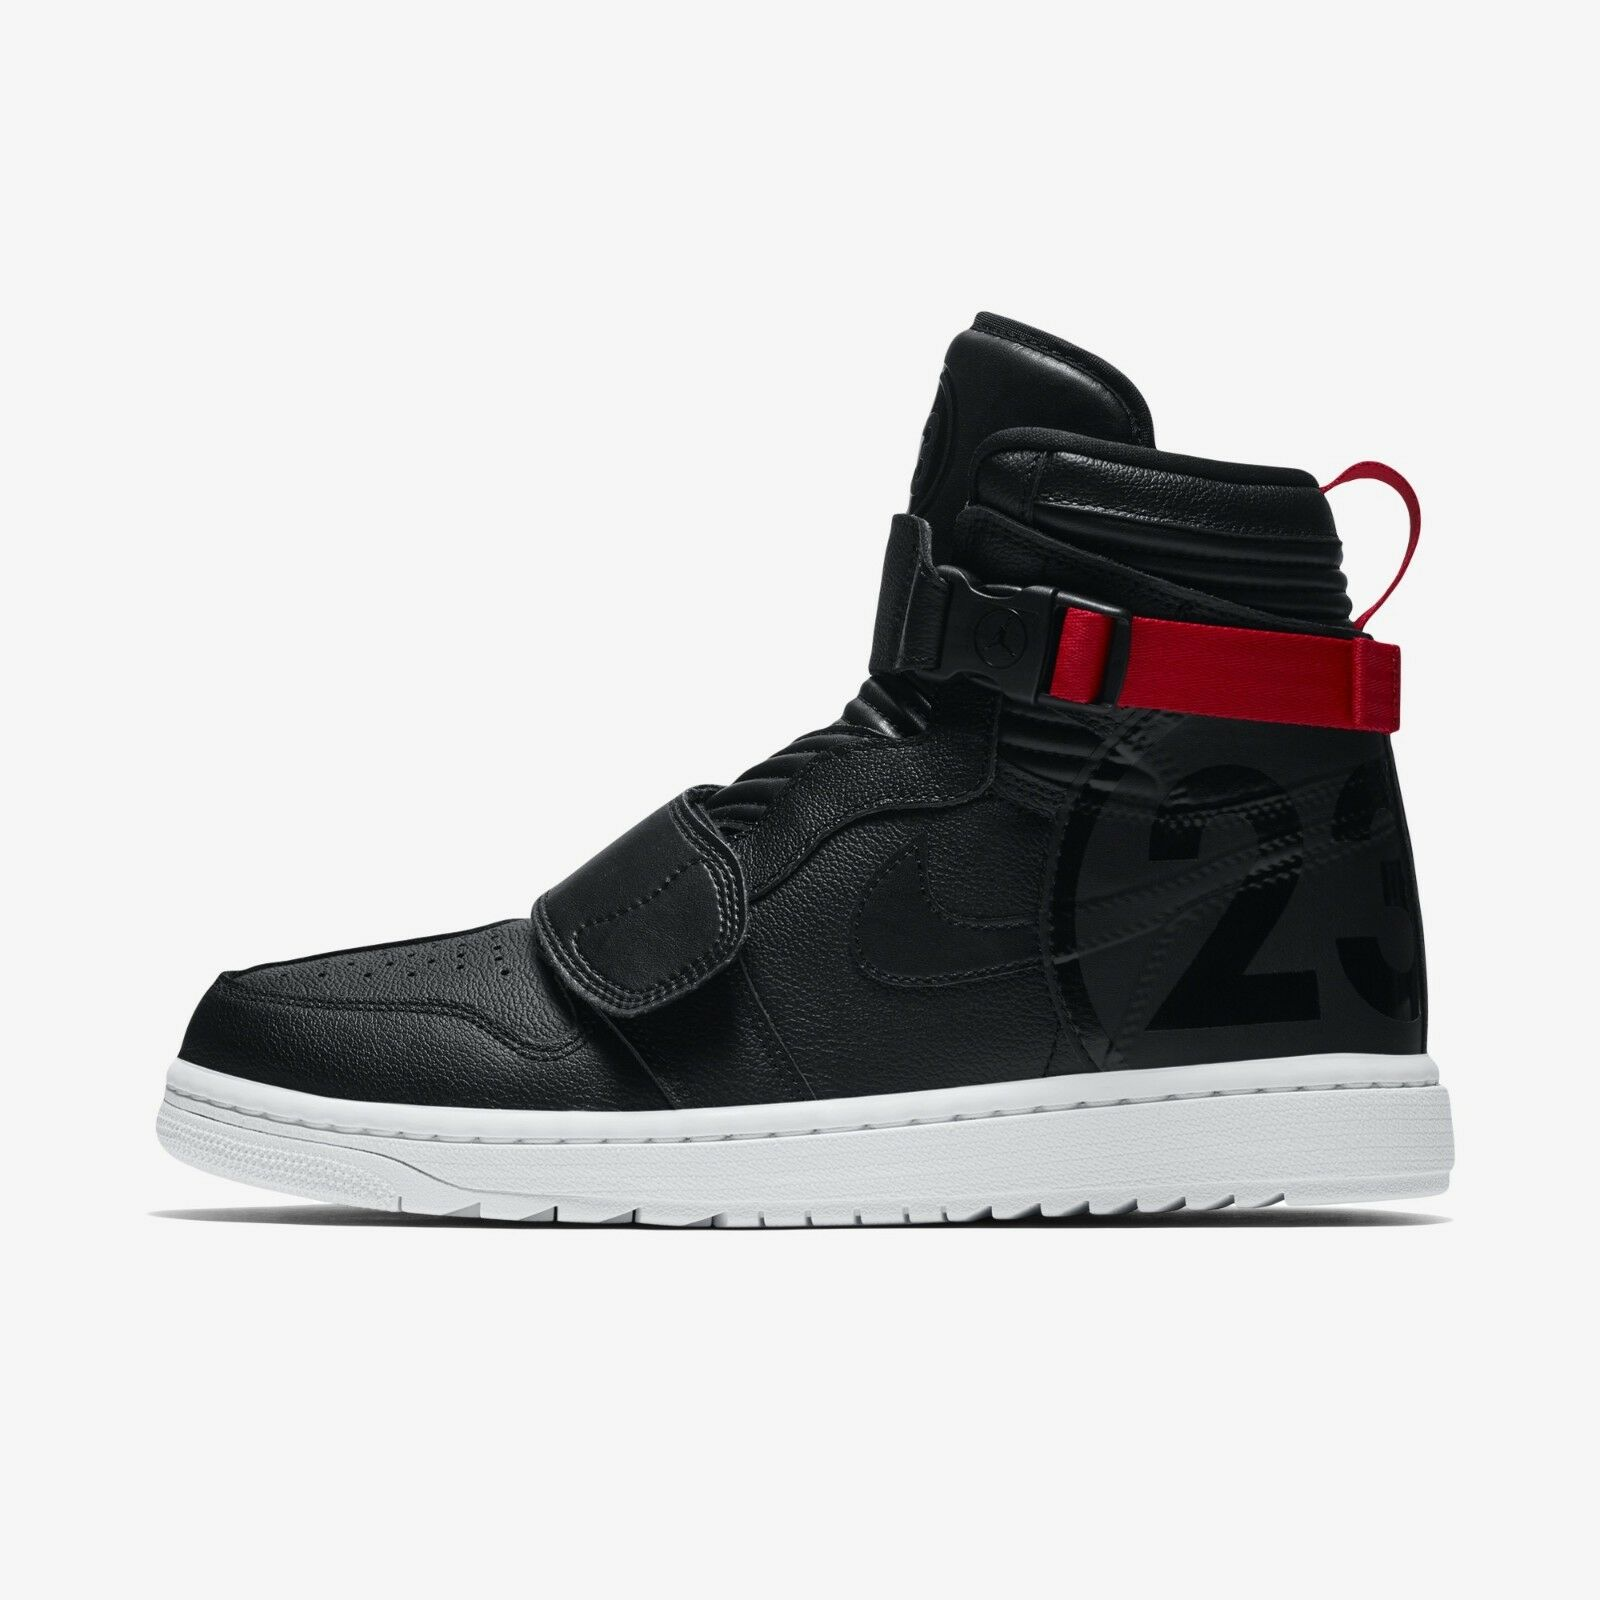 Nike Air JOrdan 1 MOTO Basketball shoes Sneakers- Black Gym Red(AT3146-001)